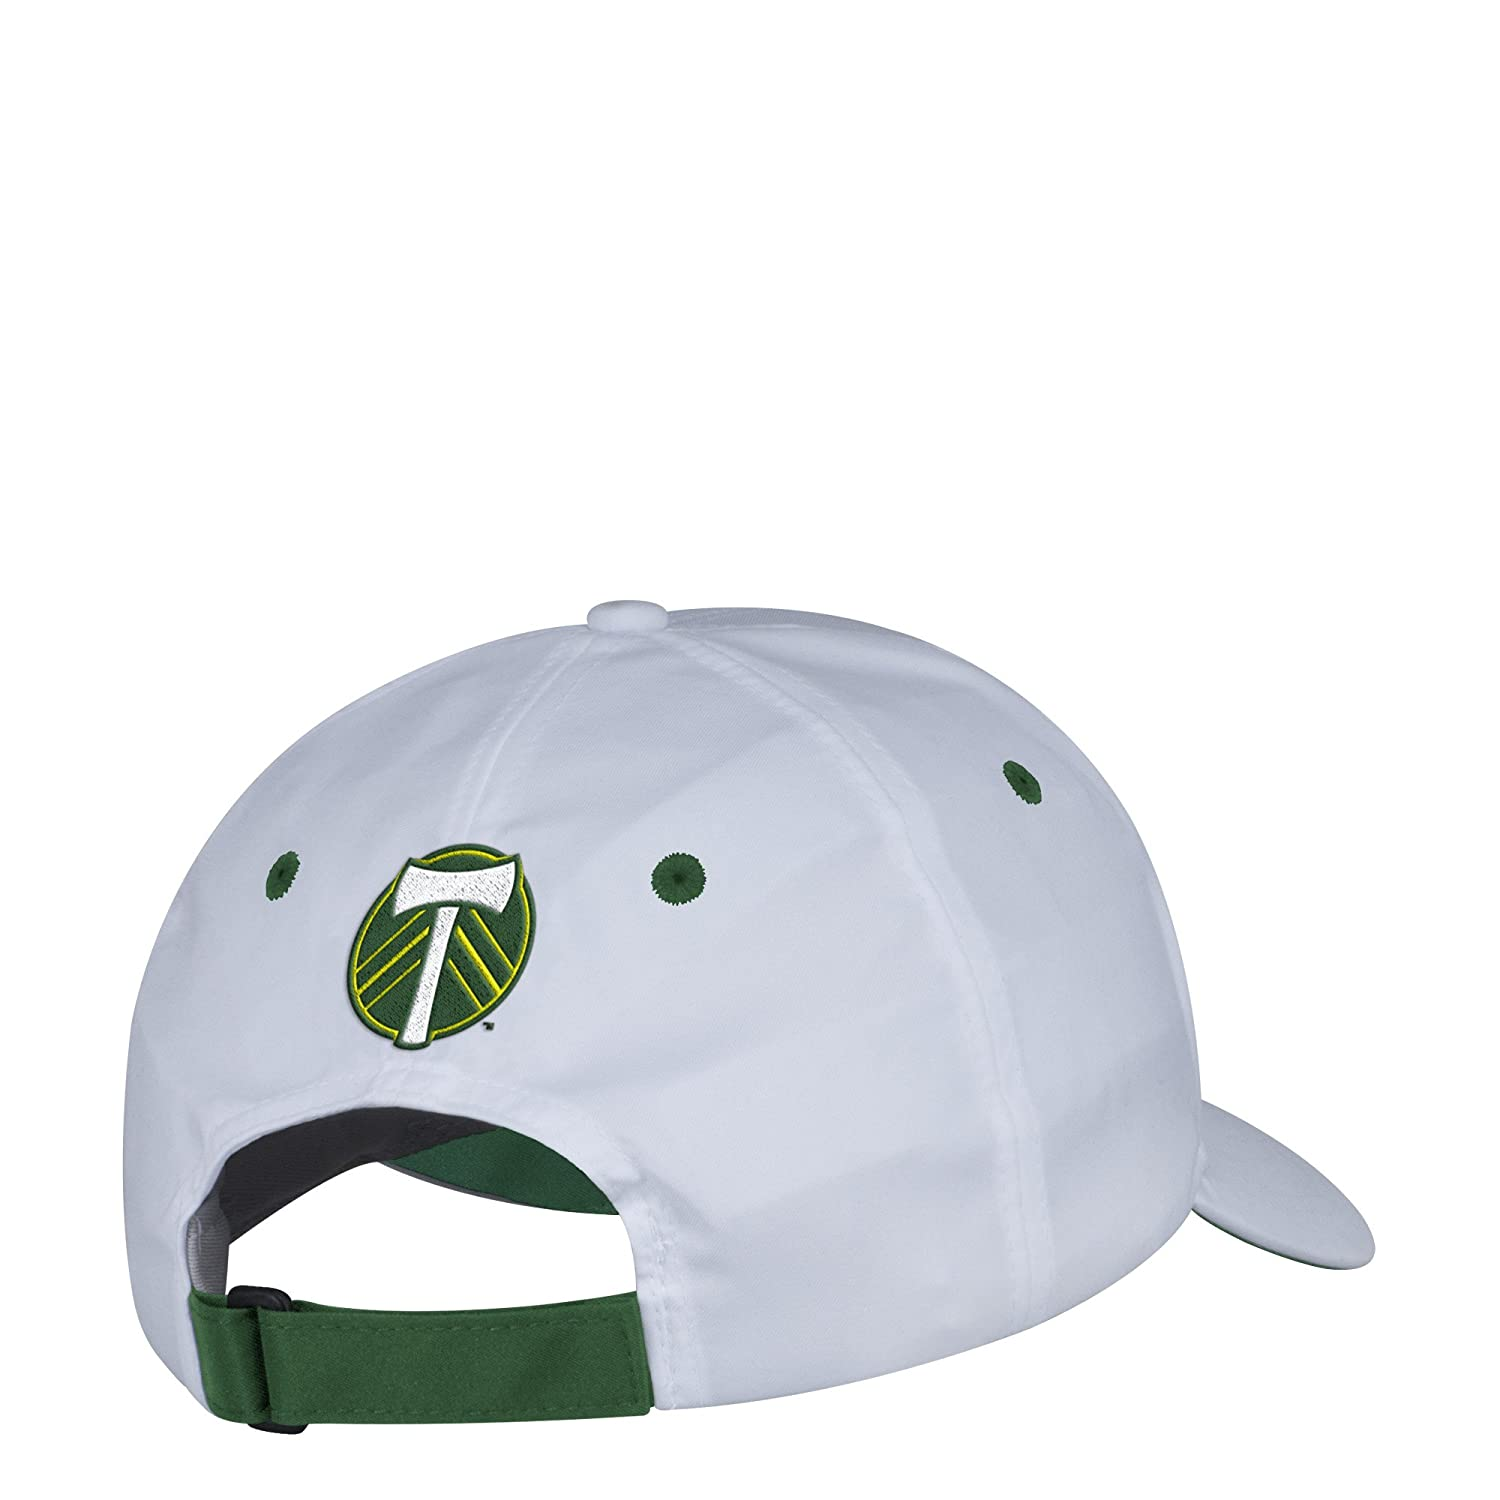 Amazon.com : adidas MLS Portland Timbers Mens White Wordmark Structured Adjustable Hat, One Size, White : Sports & Outdoors